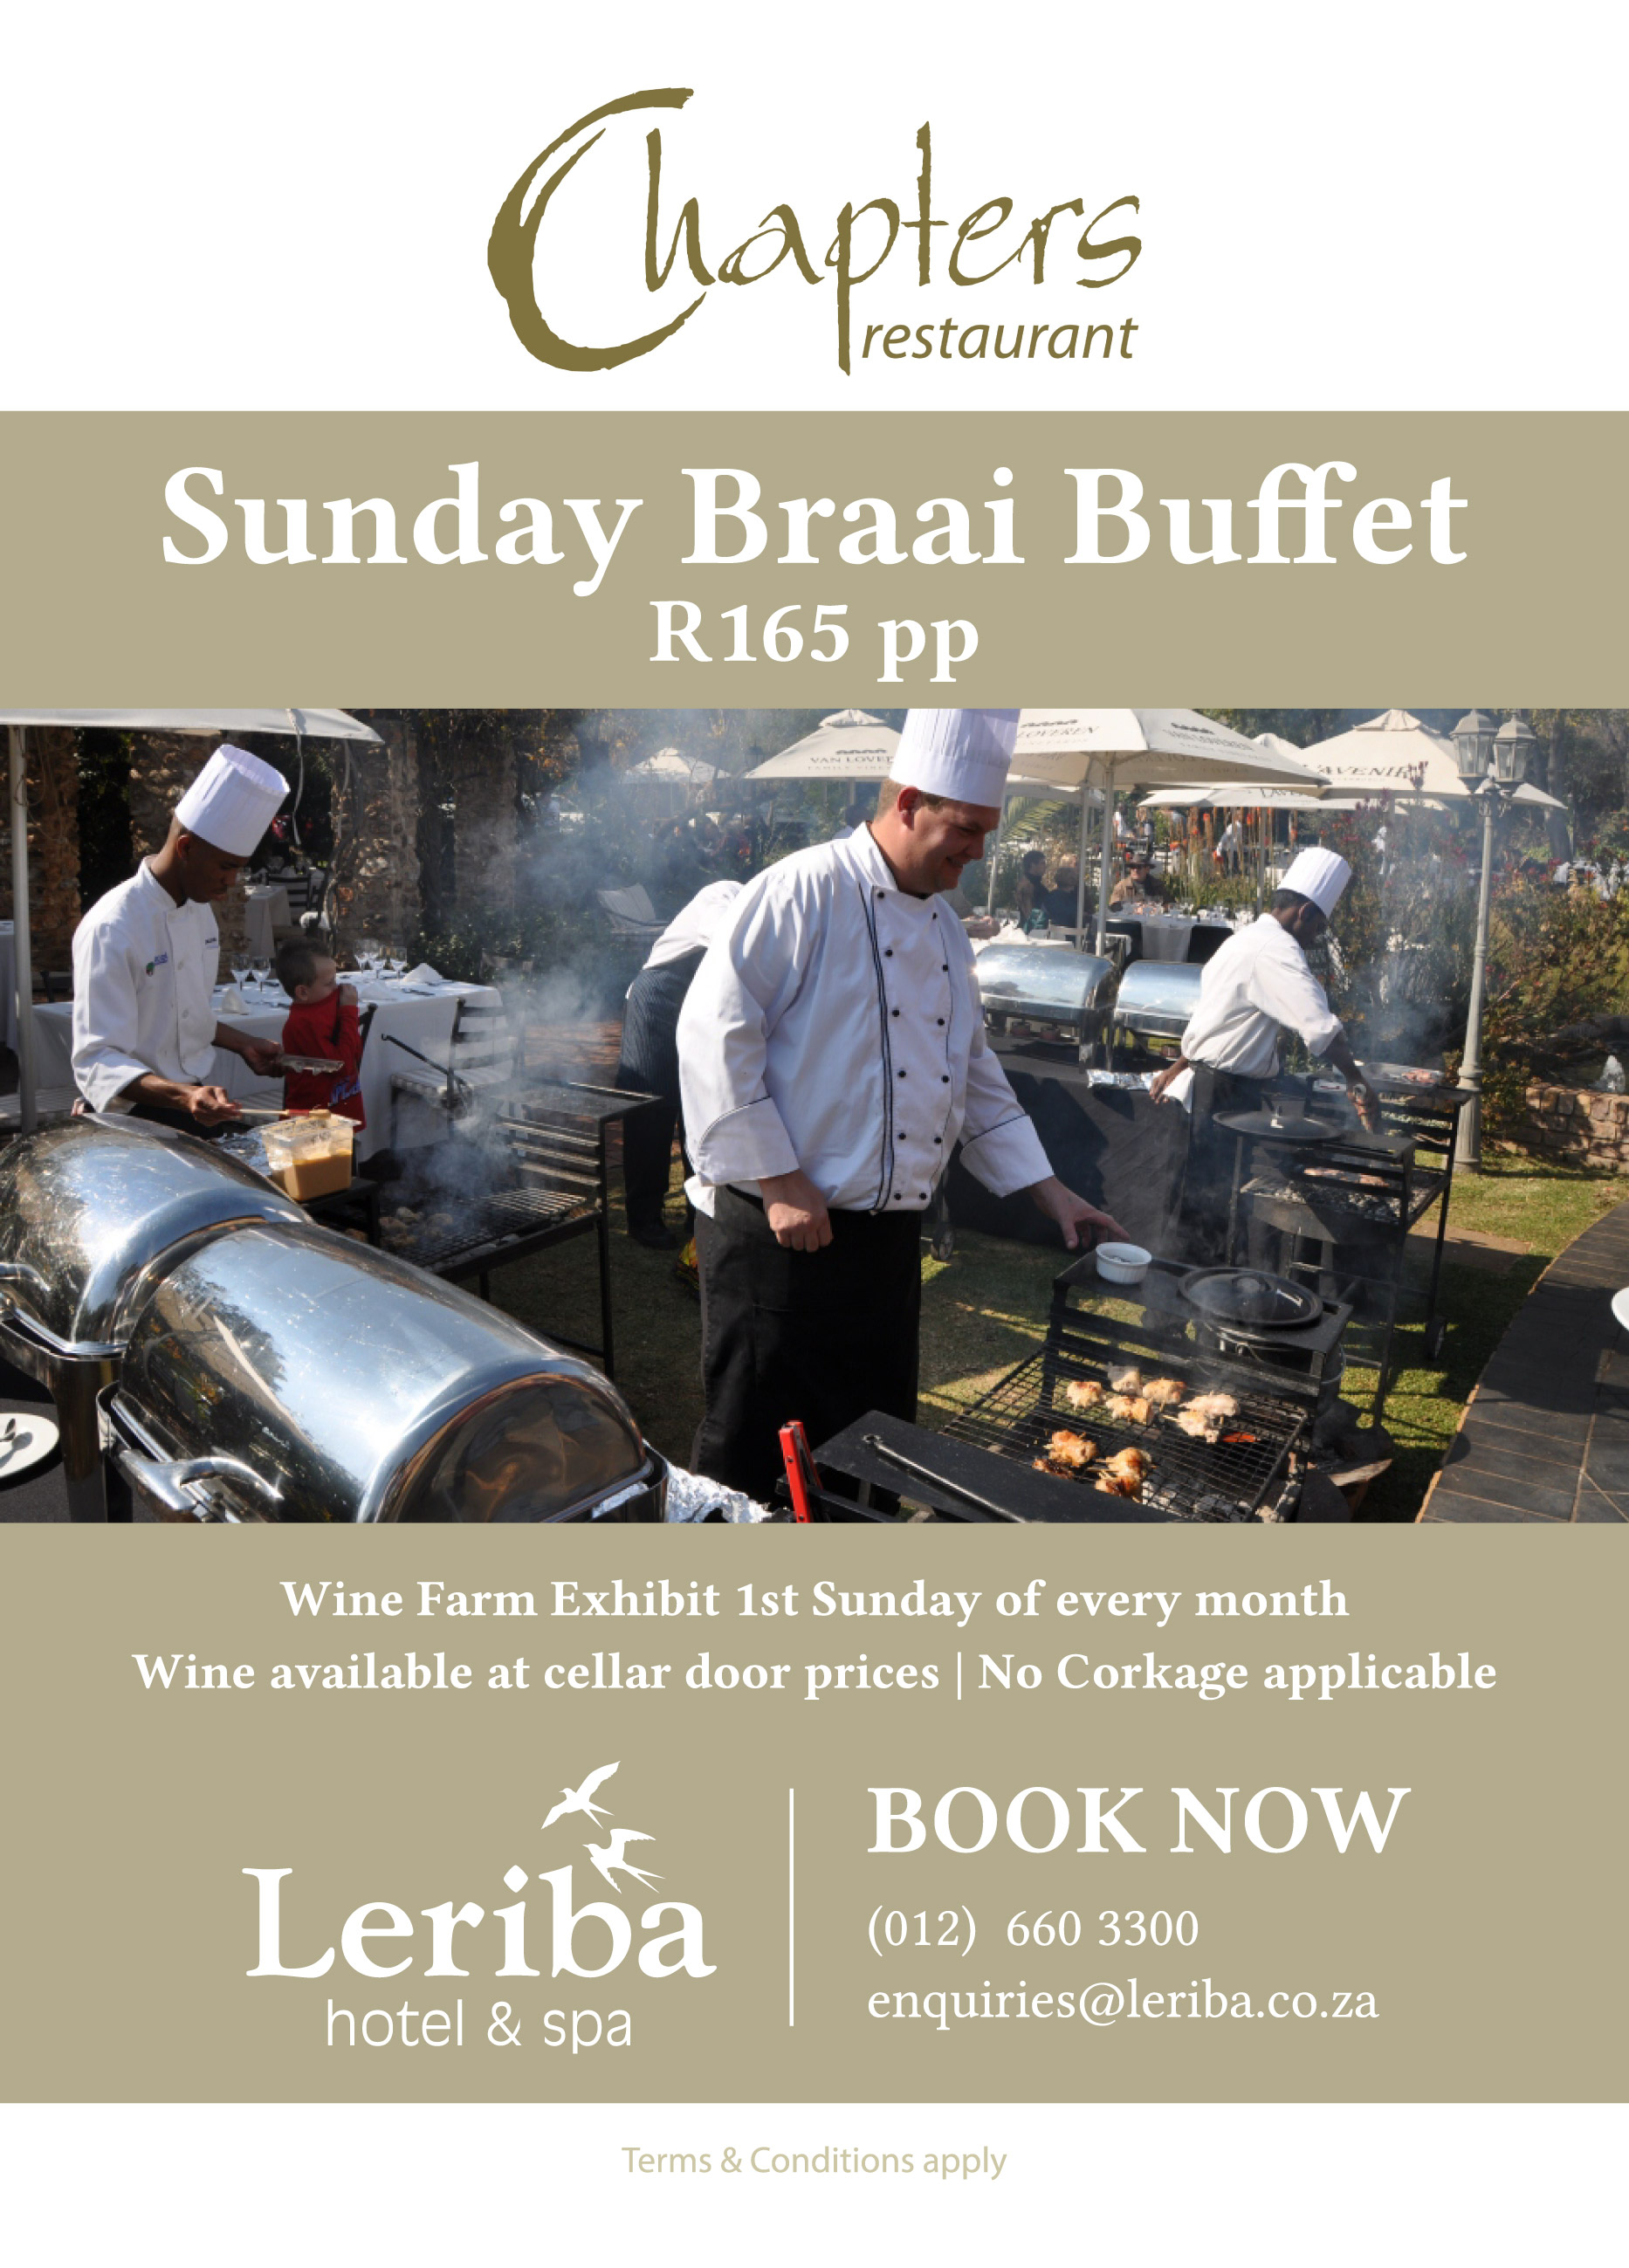 chapter_braaibuffet_leaflet-02_2